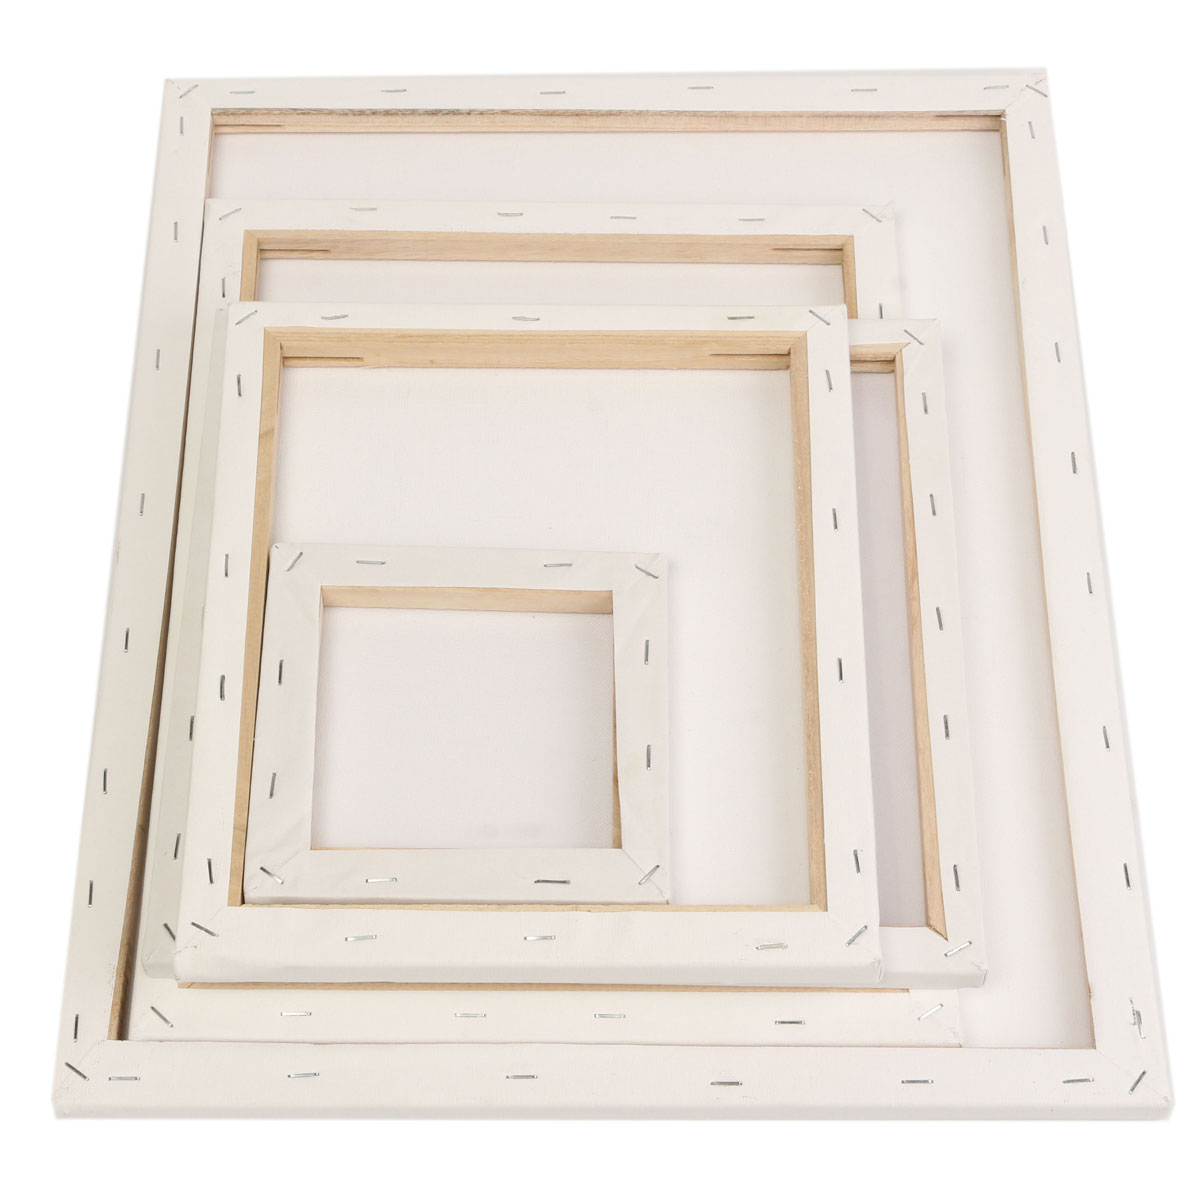 White Blank Square Canvas Painting Drawing Board Wooden